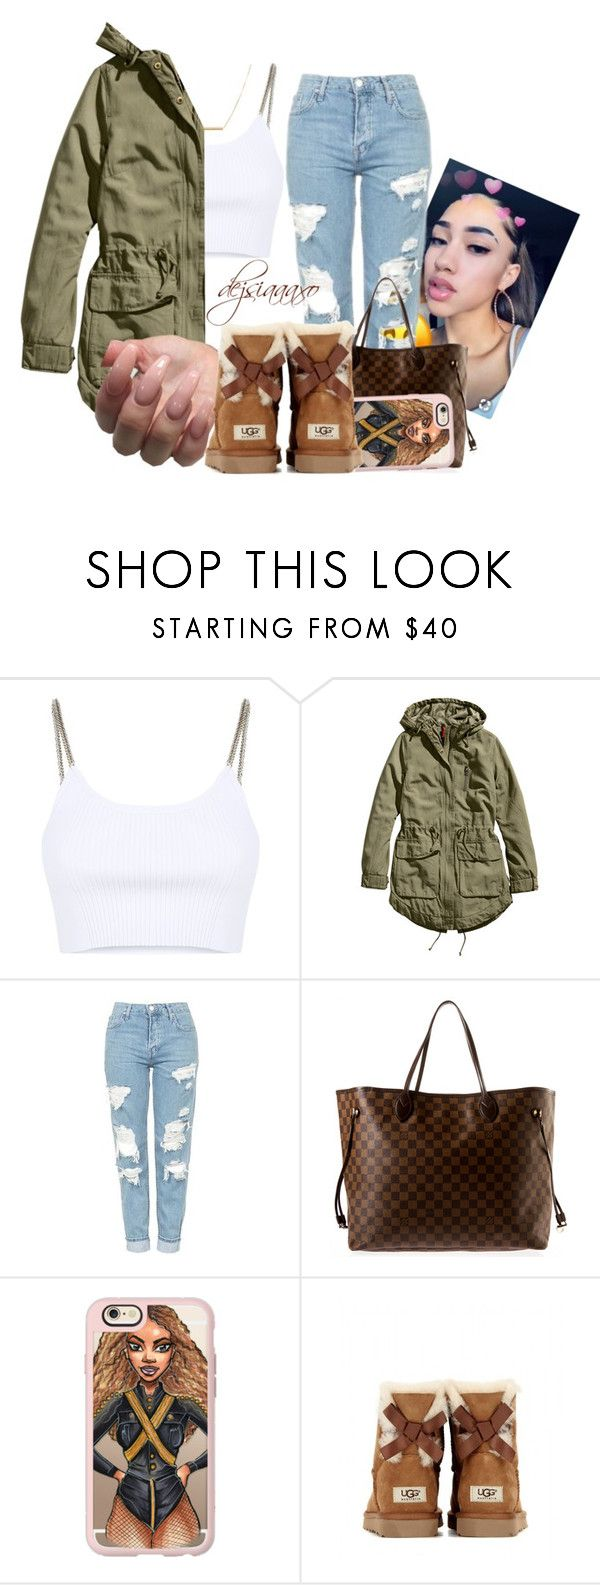 """Untitled #3"" by dejsiaaaxo ❤ liked on Polyvore featuring Alexander Wang, H&M, Topshop, Louis Vuitton, Casetify, UGG Australia and Dutch Basics"